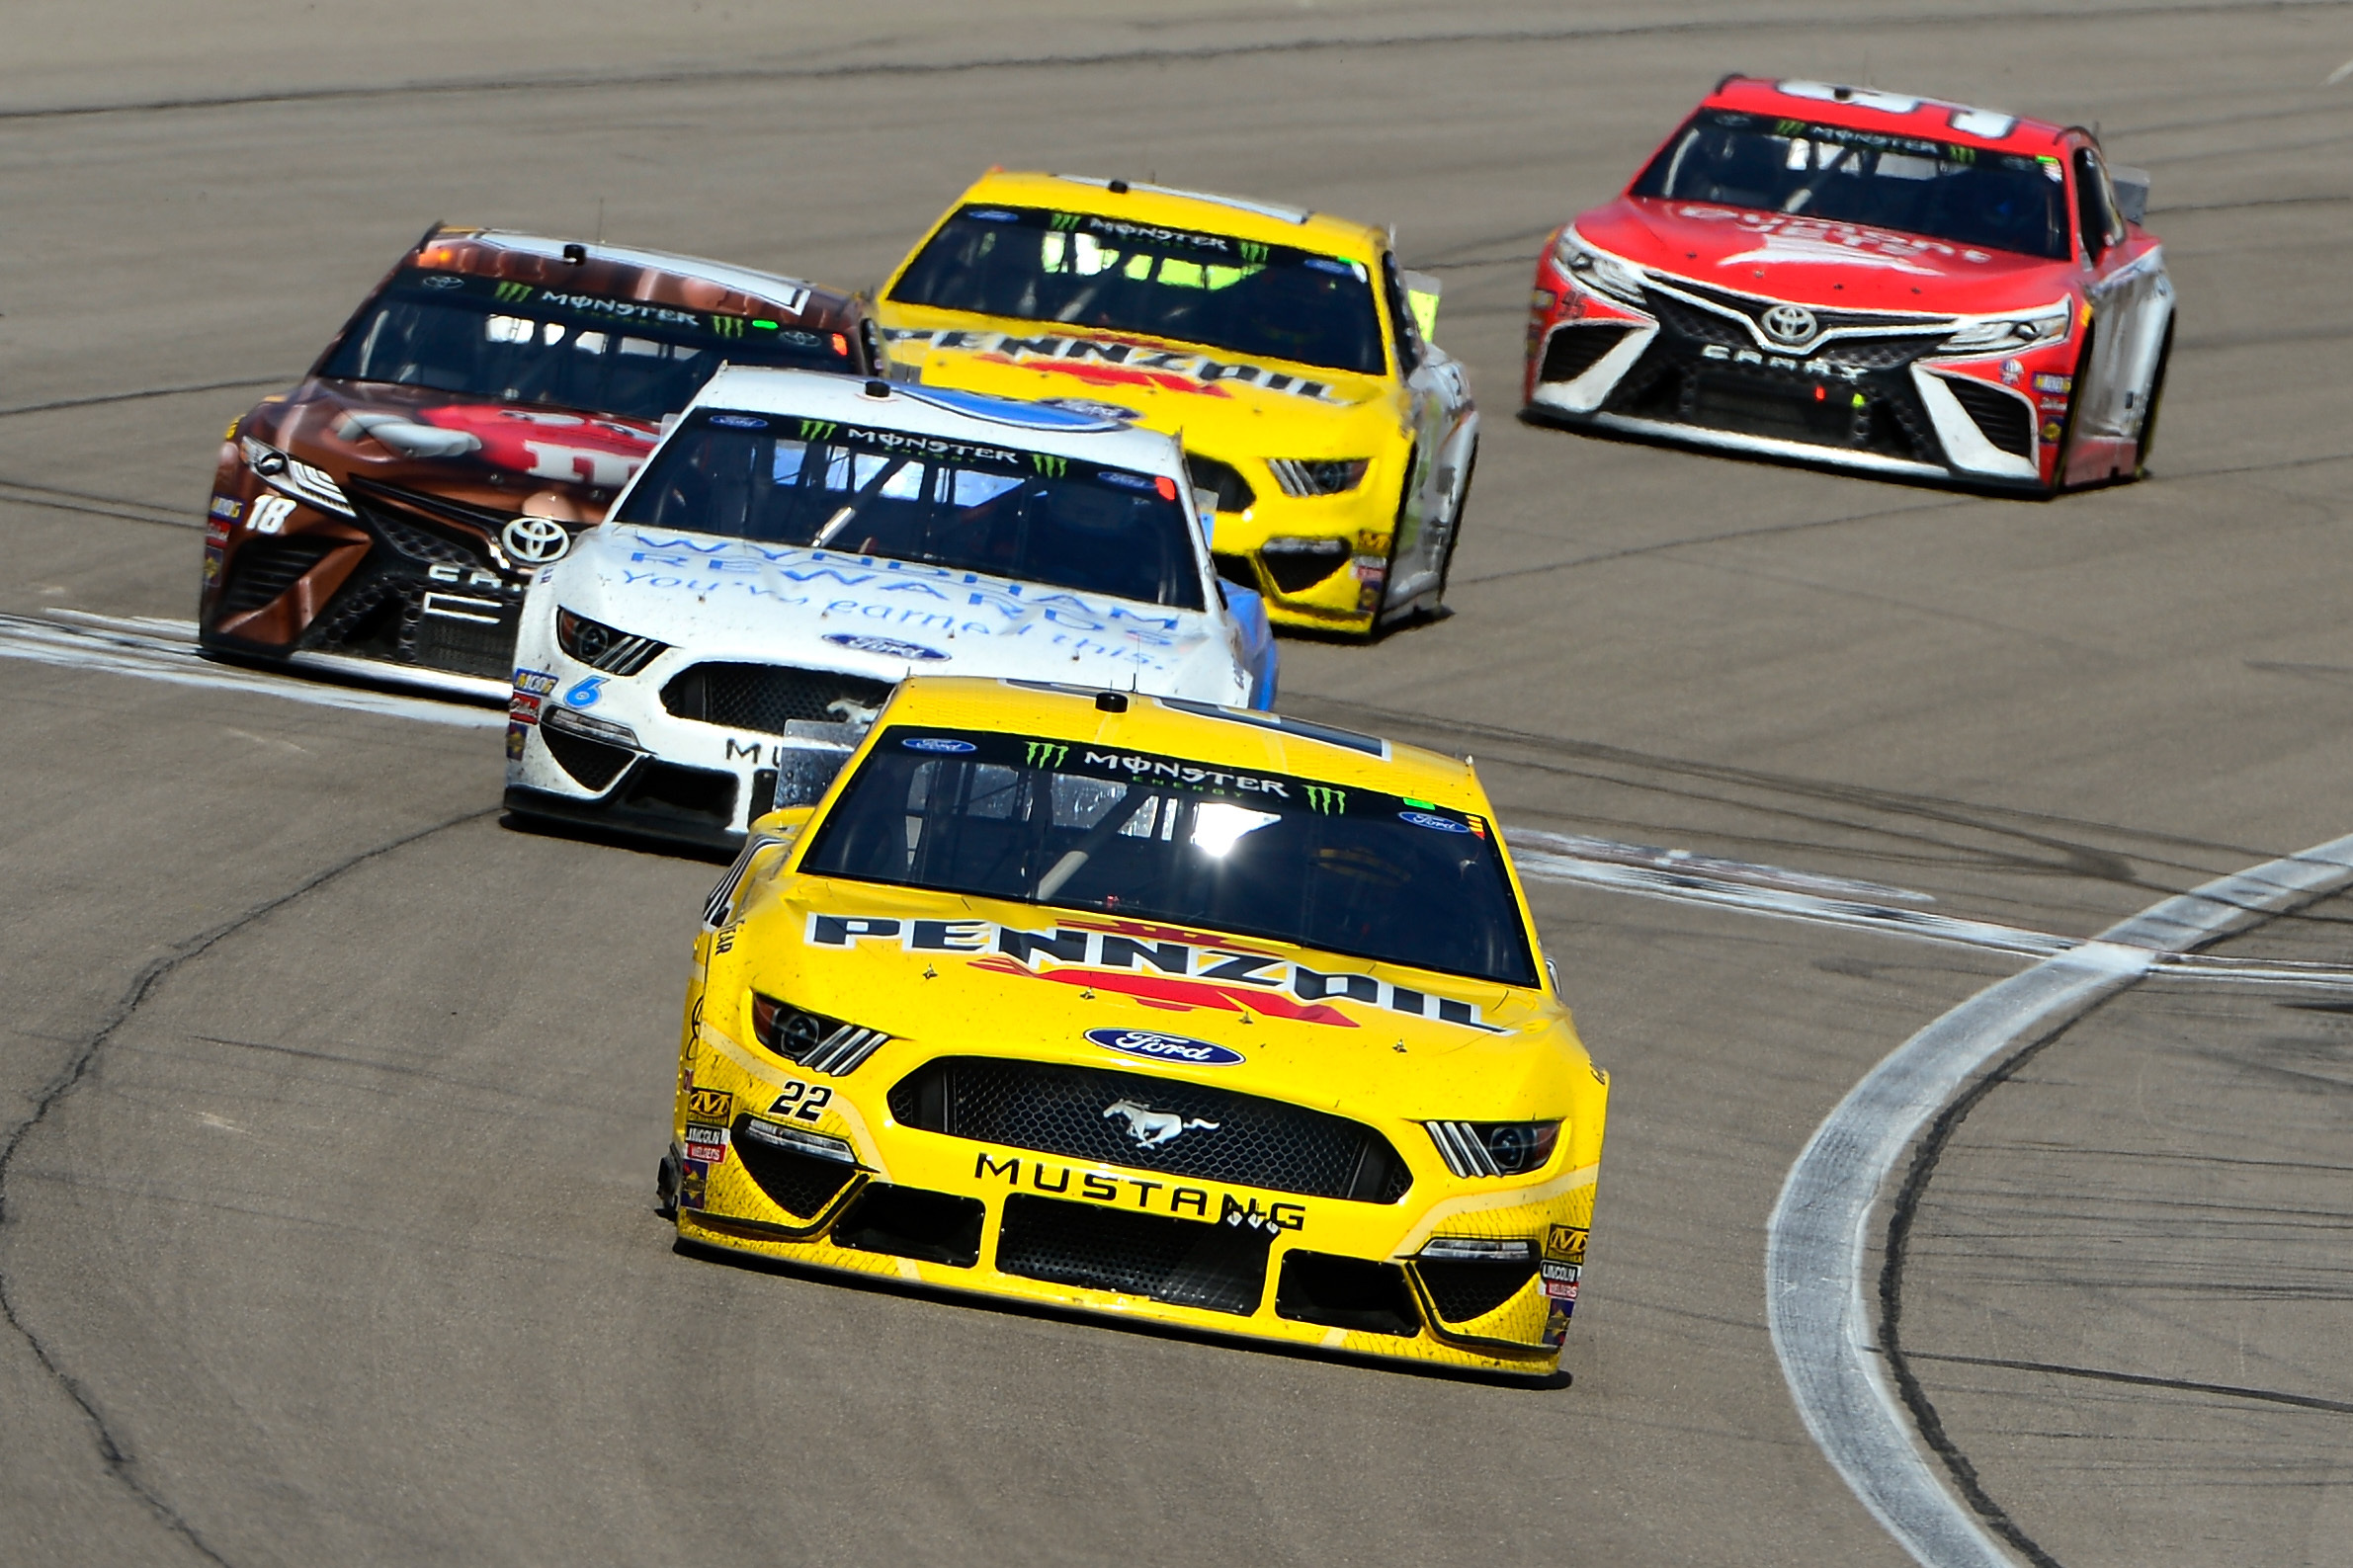 NASCAR at Las Vegas 2019 Results: Joey Logano Bests Brad Keselowski for Win | Bleacher Report | Latest News, Videos and Highlights